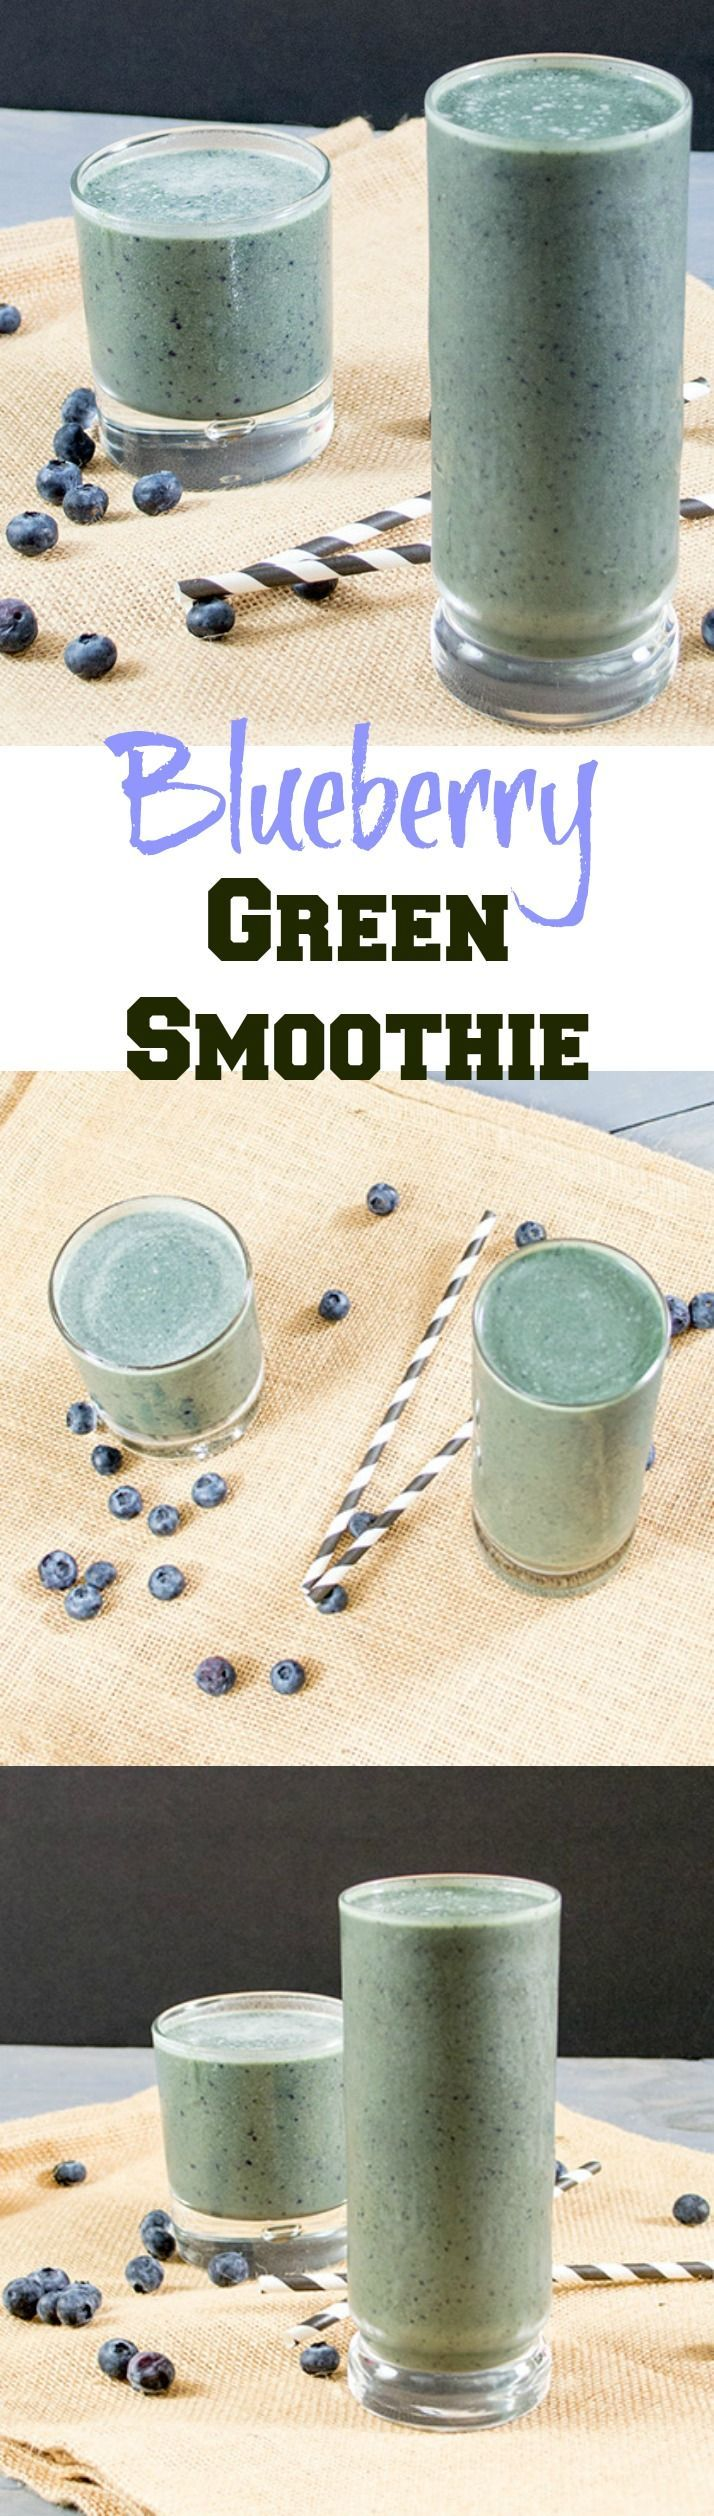 Start! your day with antioxidant packed blueberries in this easy to make green smoothie recipe. Easy to make, perfect for on the go breakfast or after workout recovery. Vegan, gluten free.